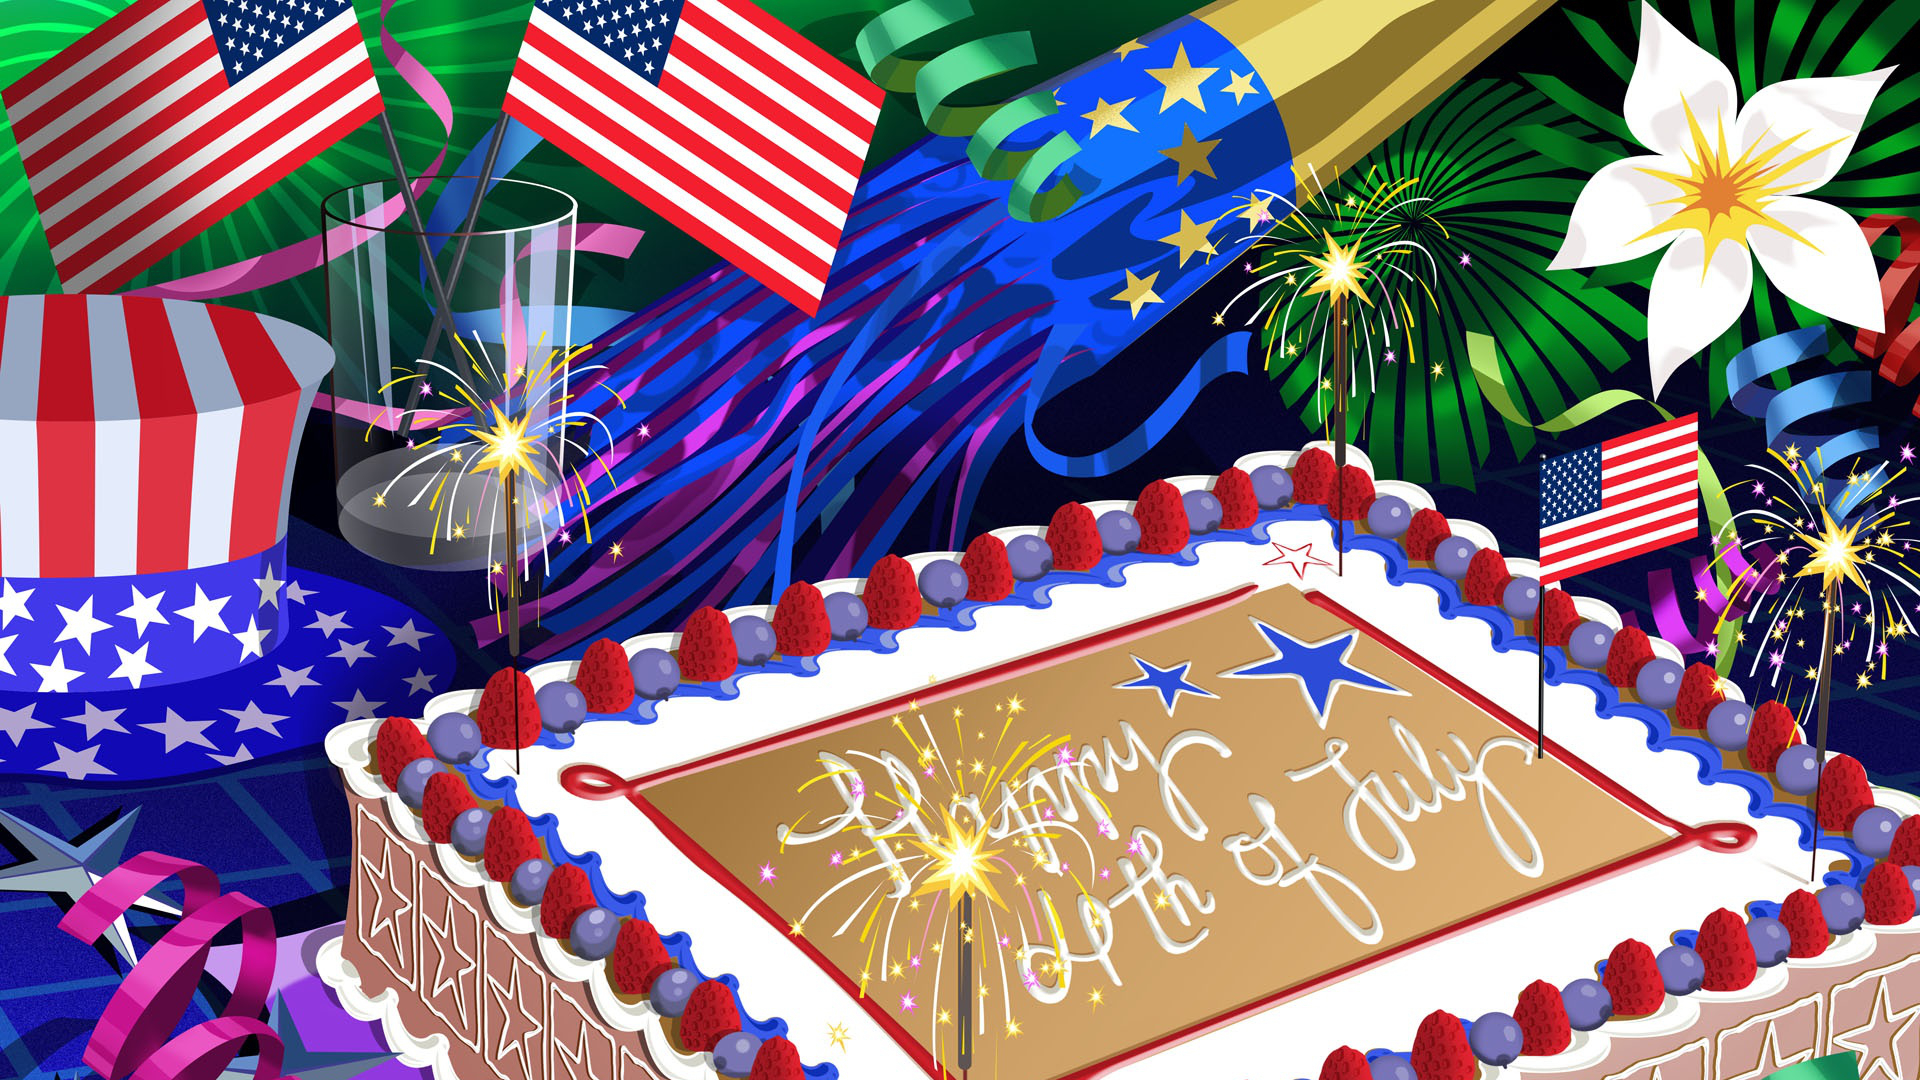 4th Of July Ipad Wallpaper Hd: 4th Of July Full HD Wallpaper And Background Image